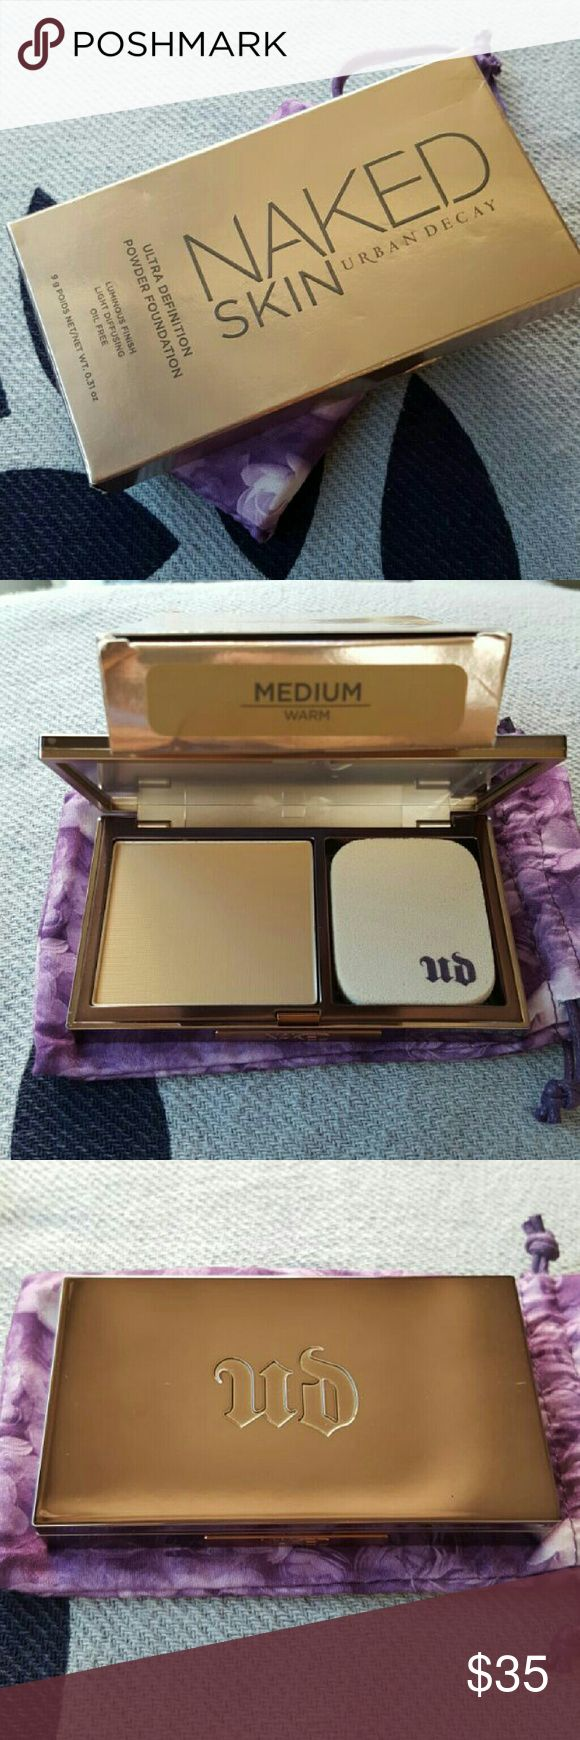 Urban Decay-Ultra Definition Powder Foundation NIB Brand New Urban Decay Naked Skin  (Ultra Definition Powder Foundation) ***Medium/Warm*** *NIB *Retails $36+ (Posh fees suck!) *Price is Firm Thank you and Happy Shopping!! (Cheaper on Merc js) (ShoeLuv84) Urban Decay Makeup Foundation